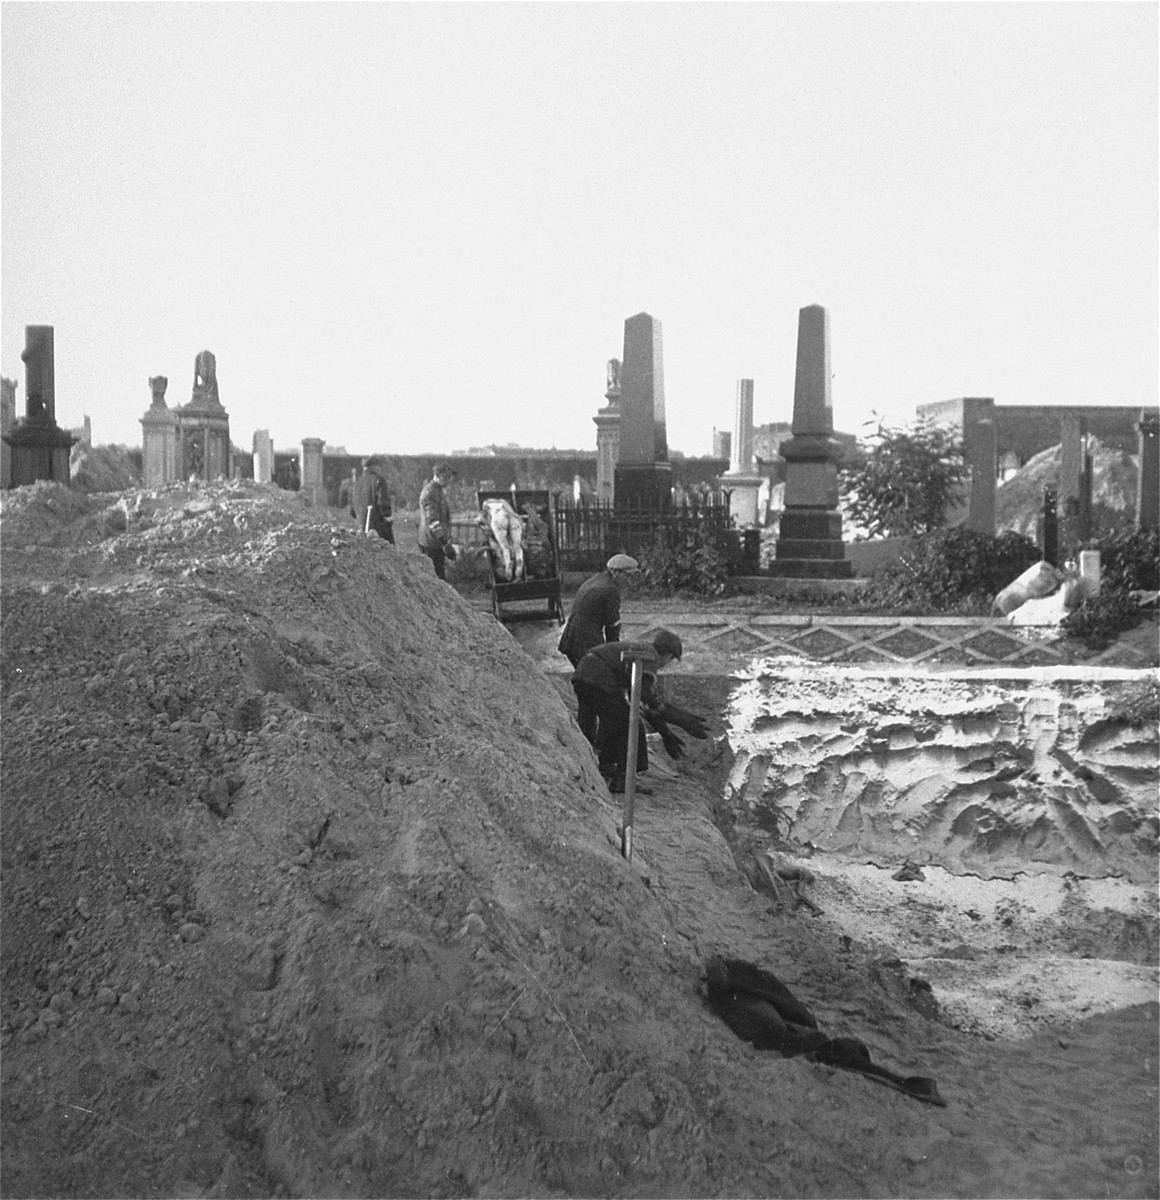 """Gravediggers unload bodies from a cart into a mass grave in the Warsaw ghetto cemetery.    Joest's caption reads: """"The corpse-carriers took the naked bodies from the cart and threw them into the grave.  For this work they wore rubber-gloves, which I first thought were made out of wood."""""""